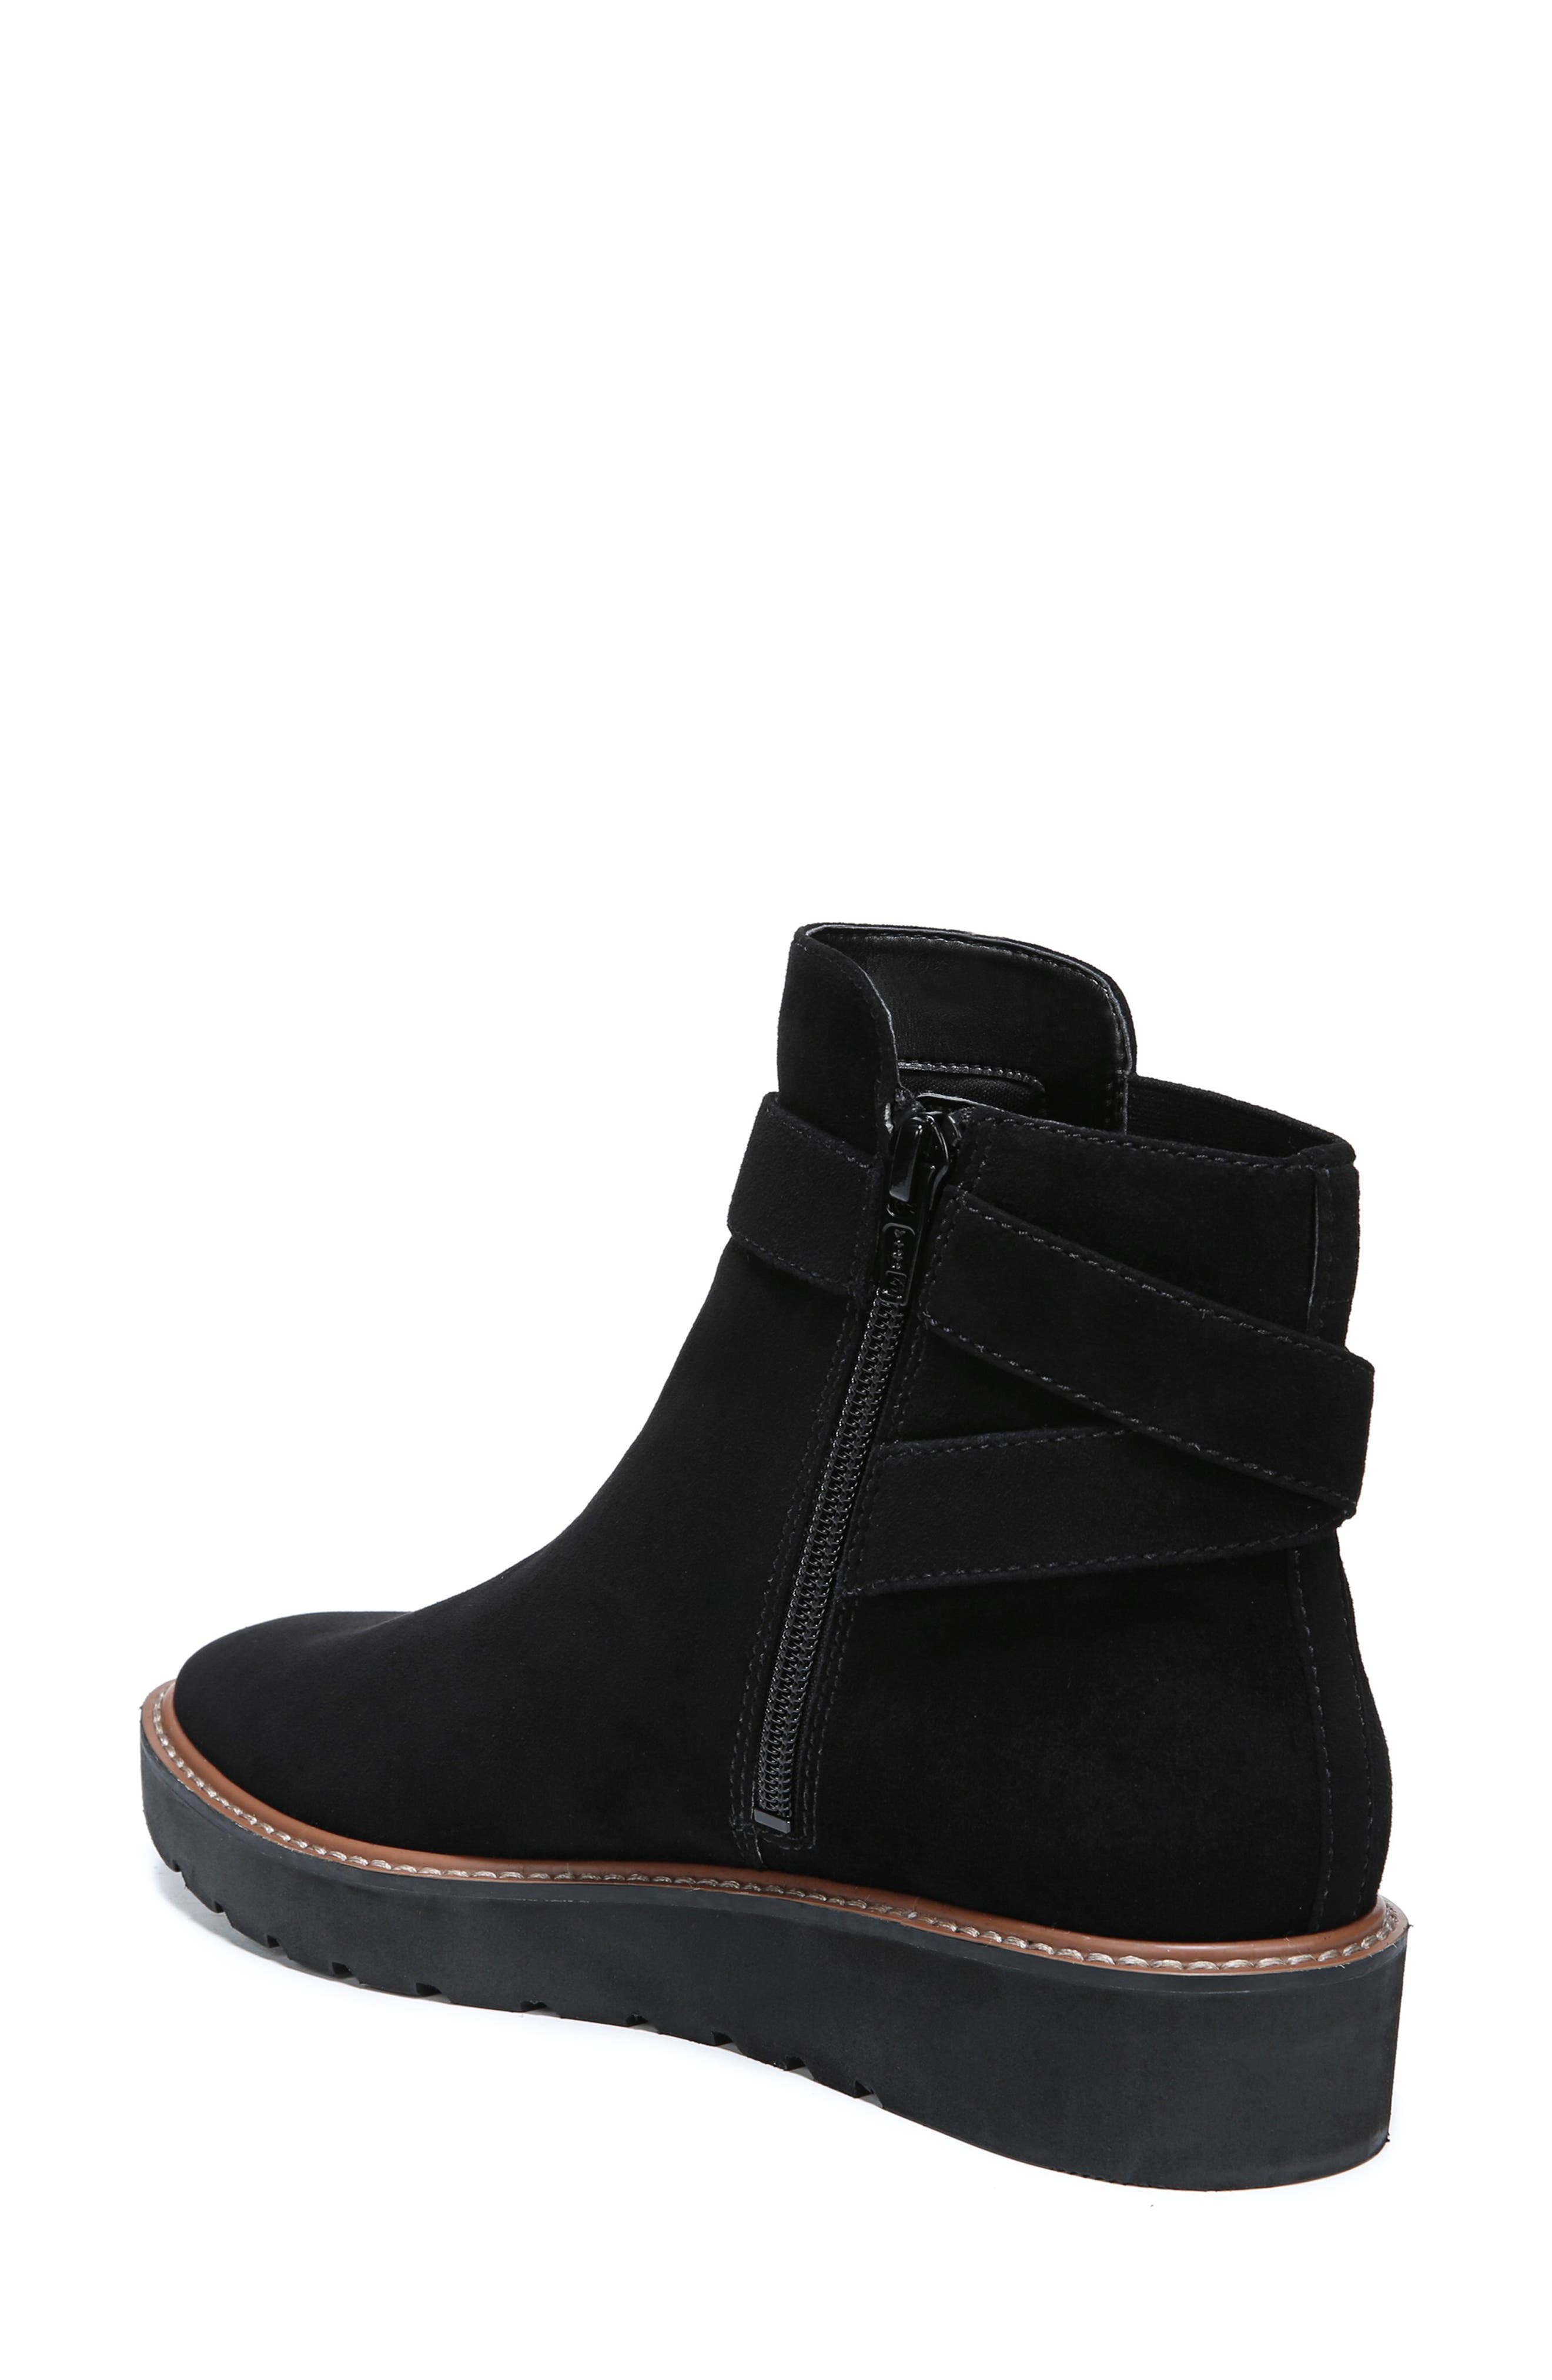 Aster Bootie,                             Alternate thumbnail 2, color,                             BLACK SUEDE